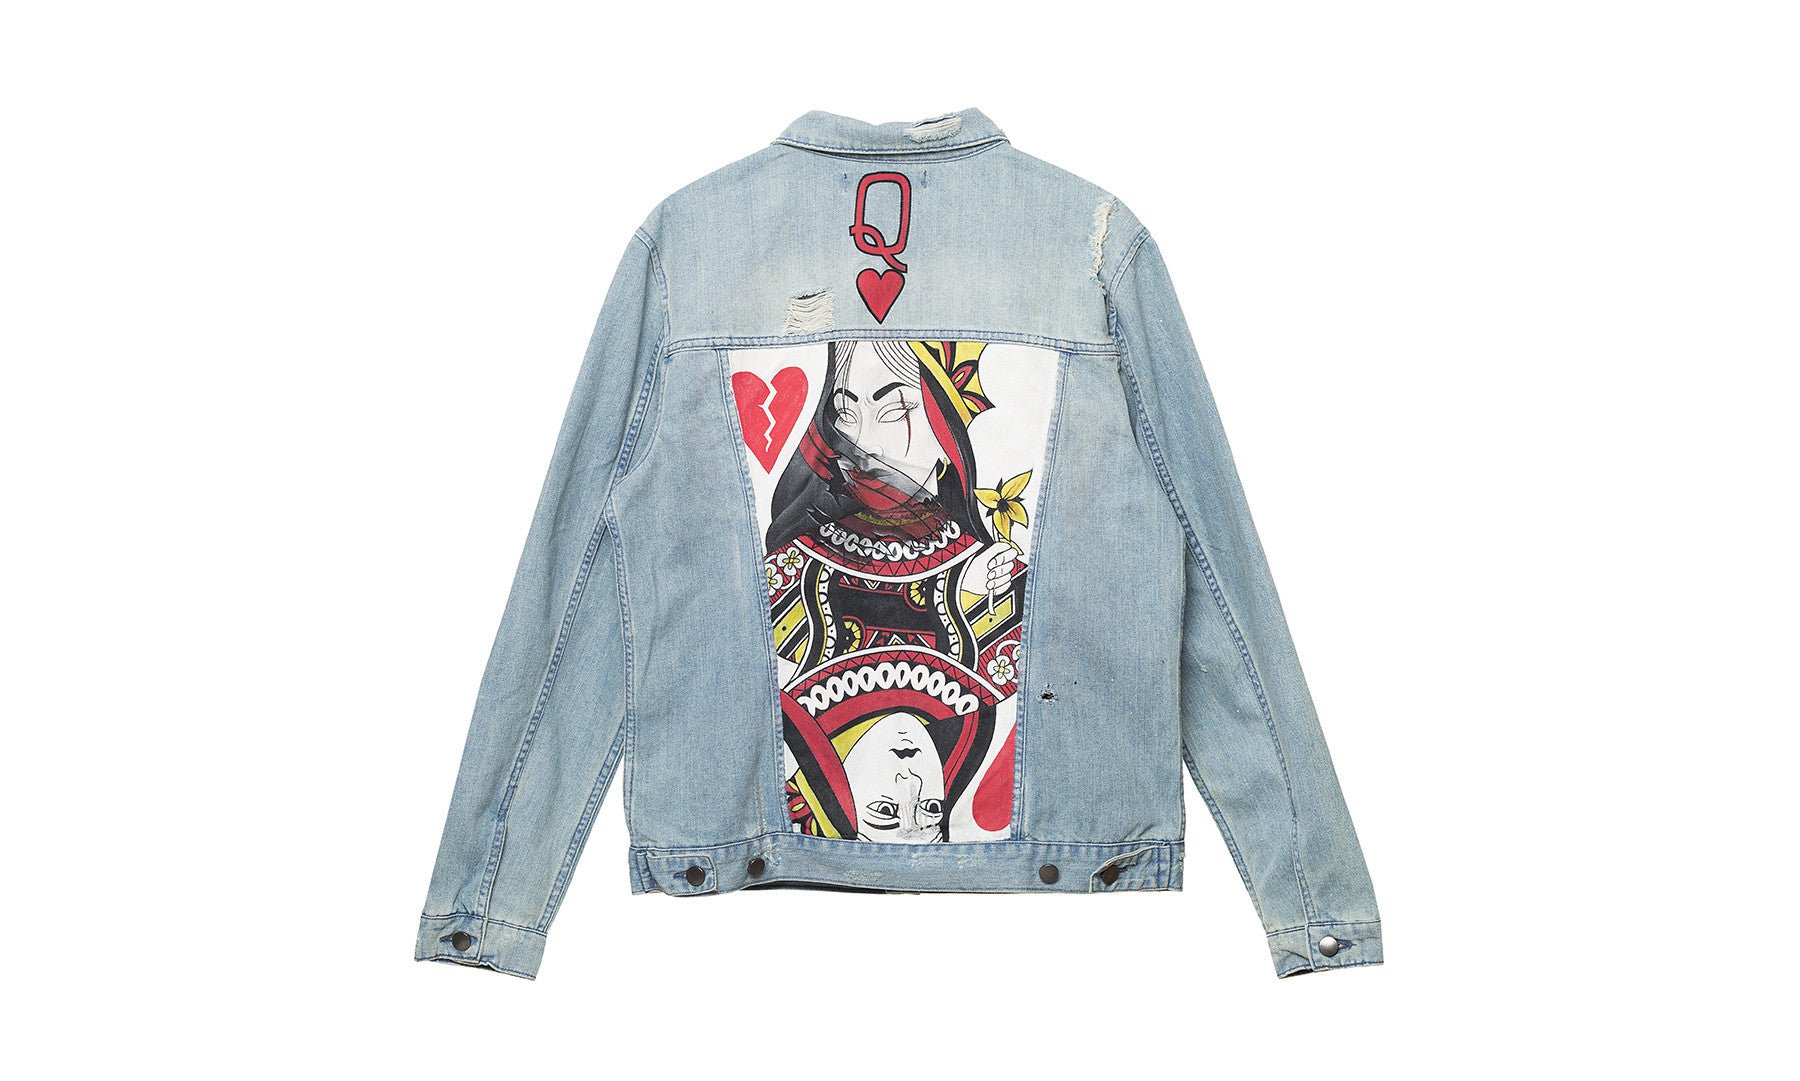 queen elwood clothing painted denim jacket